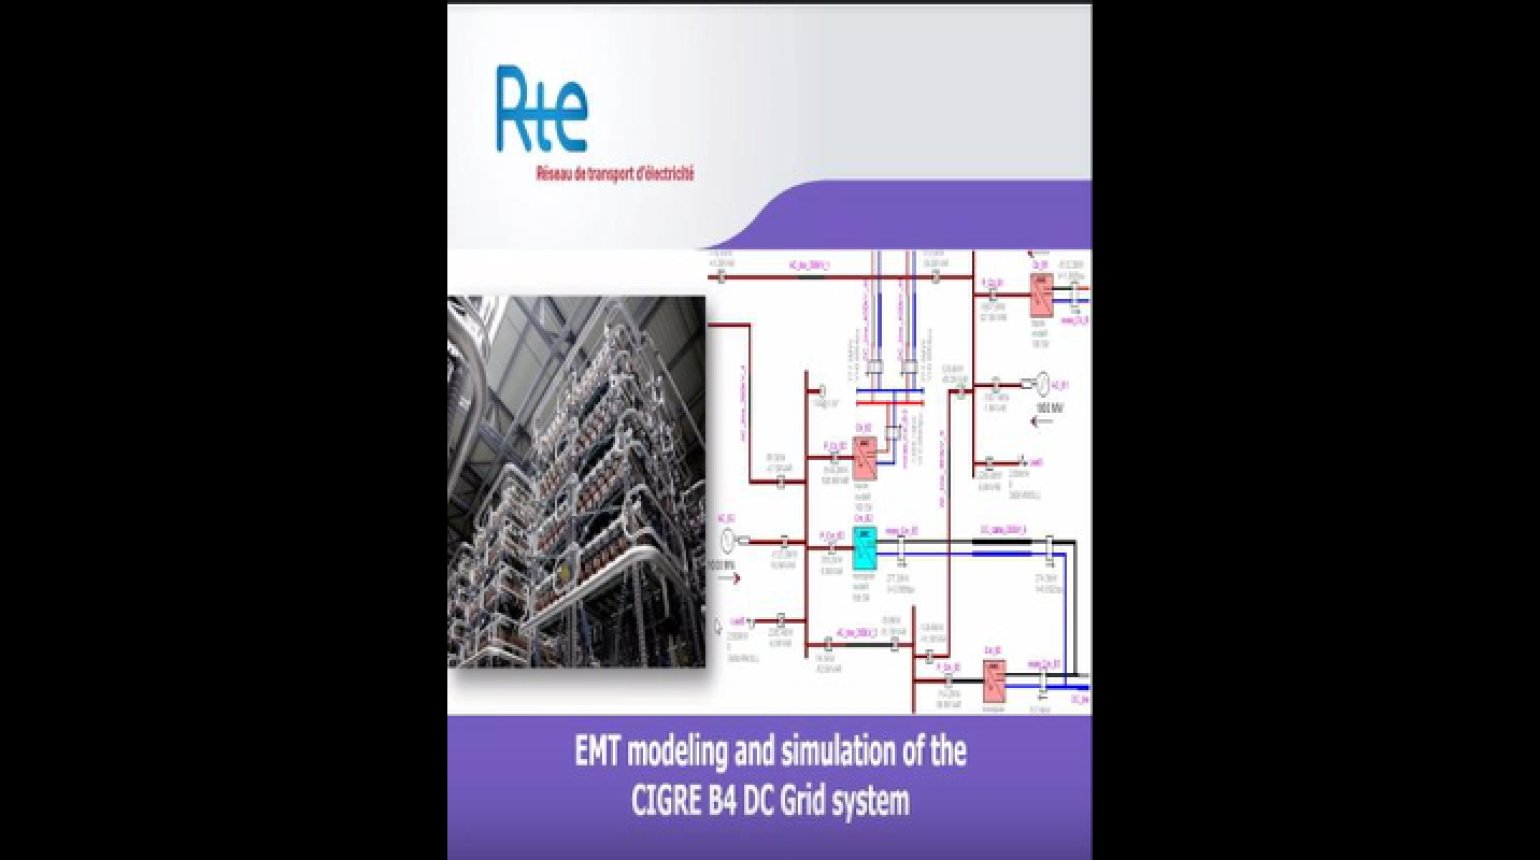 EMT Modeling and Simulation of the CIGRE B4 DC Grid System